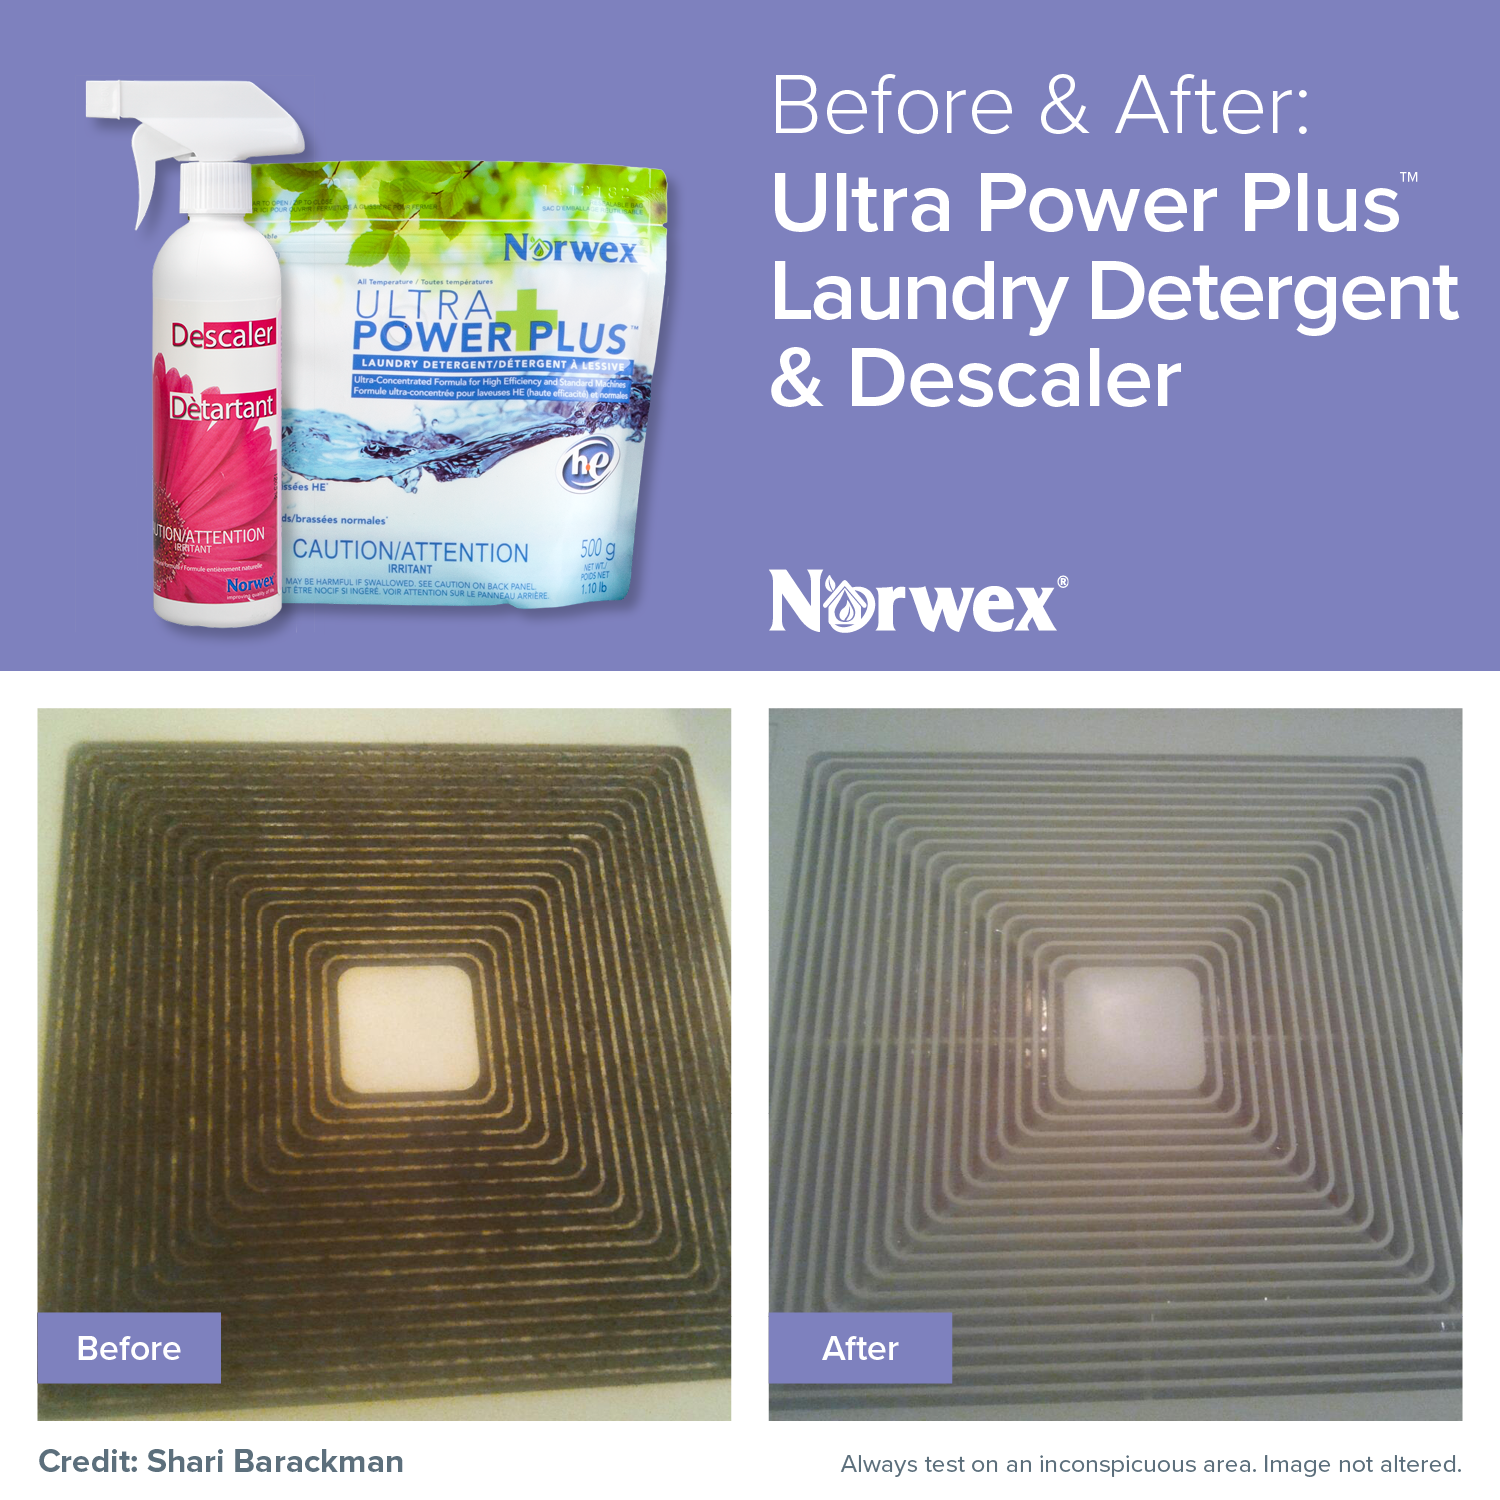 The Norwex Ultra Power Plus Laundry Detergent Dissolves Grease And